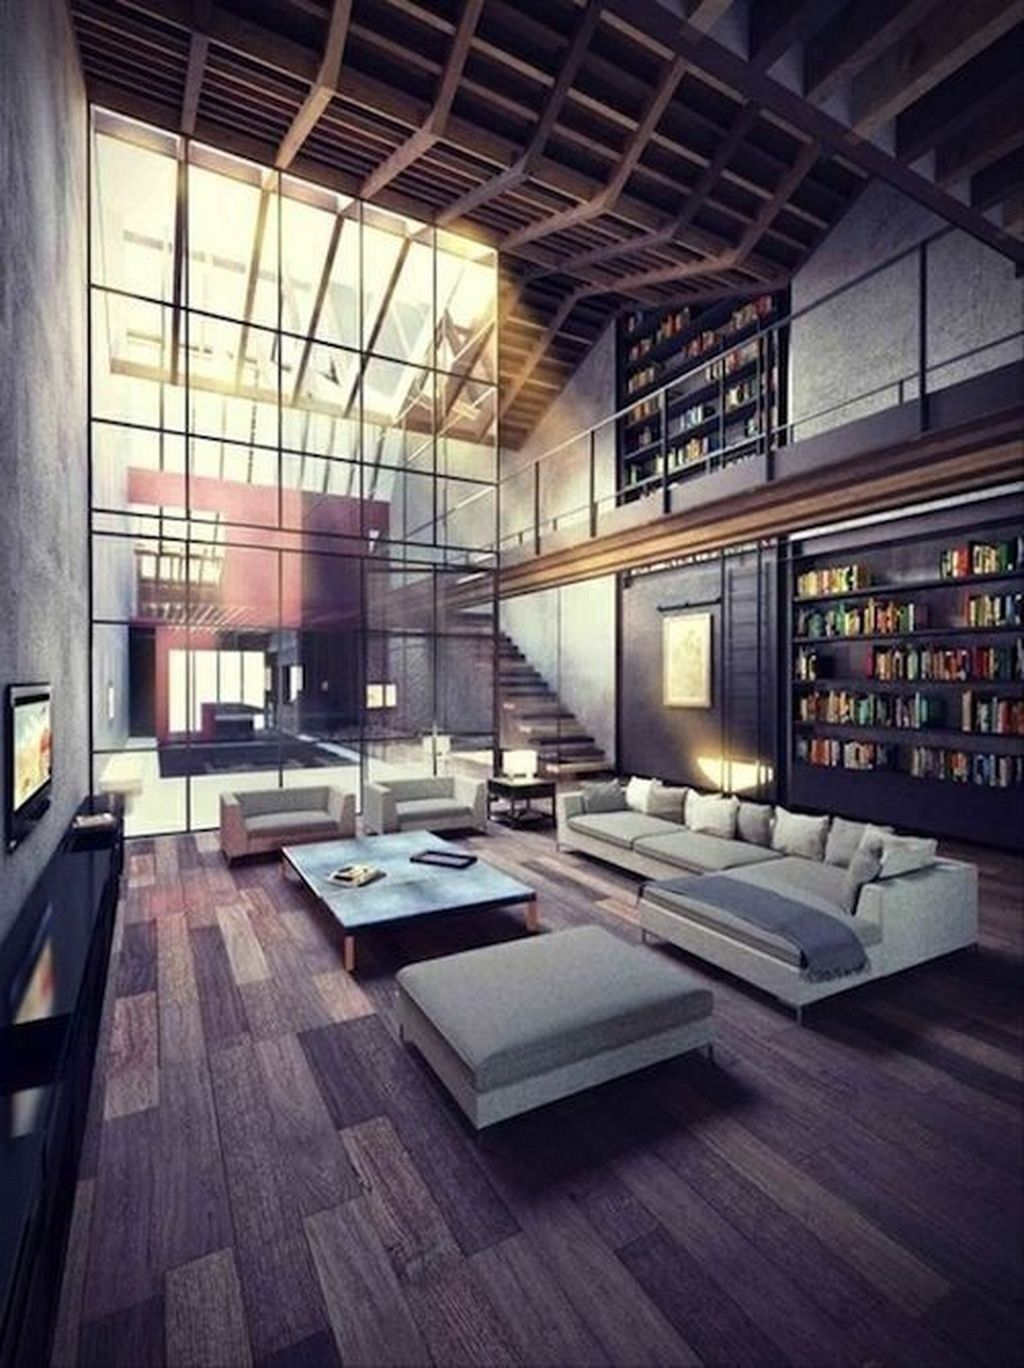 Modern Studio Apartment Decorations Ideas 03 Loft Interior